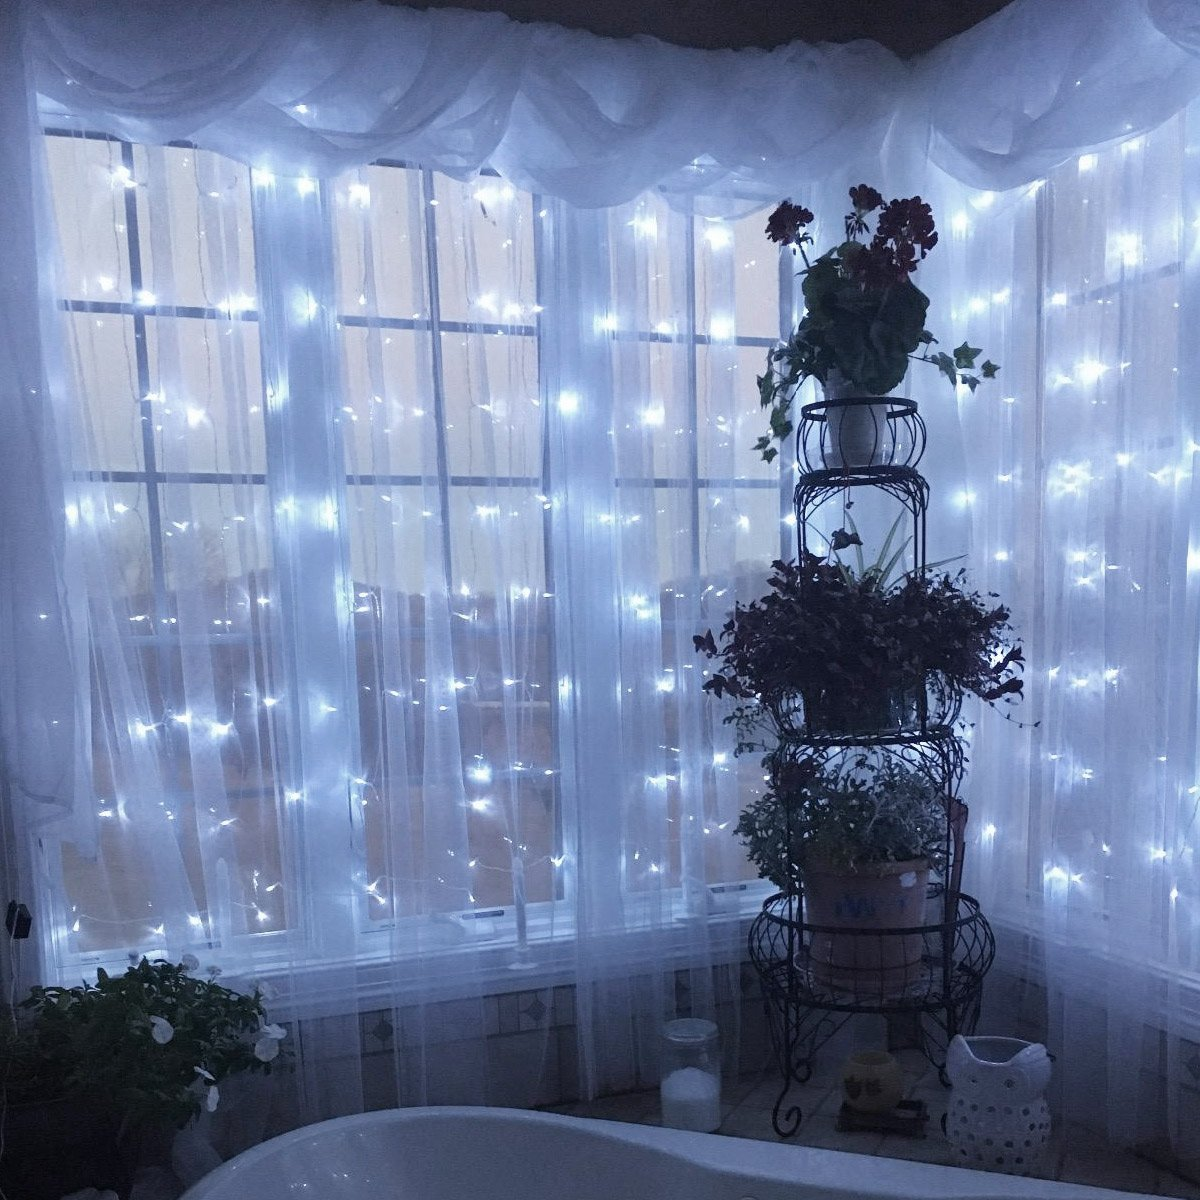 LE 300 LED Window Curtain String Light Daylight White Icicle Fairy Light with Remote 8 Modes Setting Timer Function Wall Decoration for Wedding Patio Party USB and Battery Powered Included